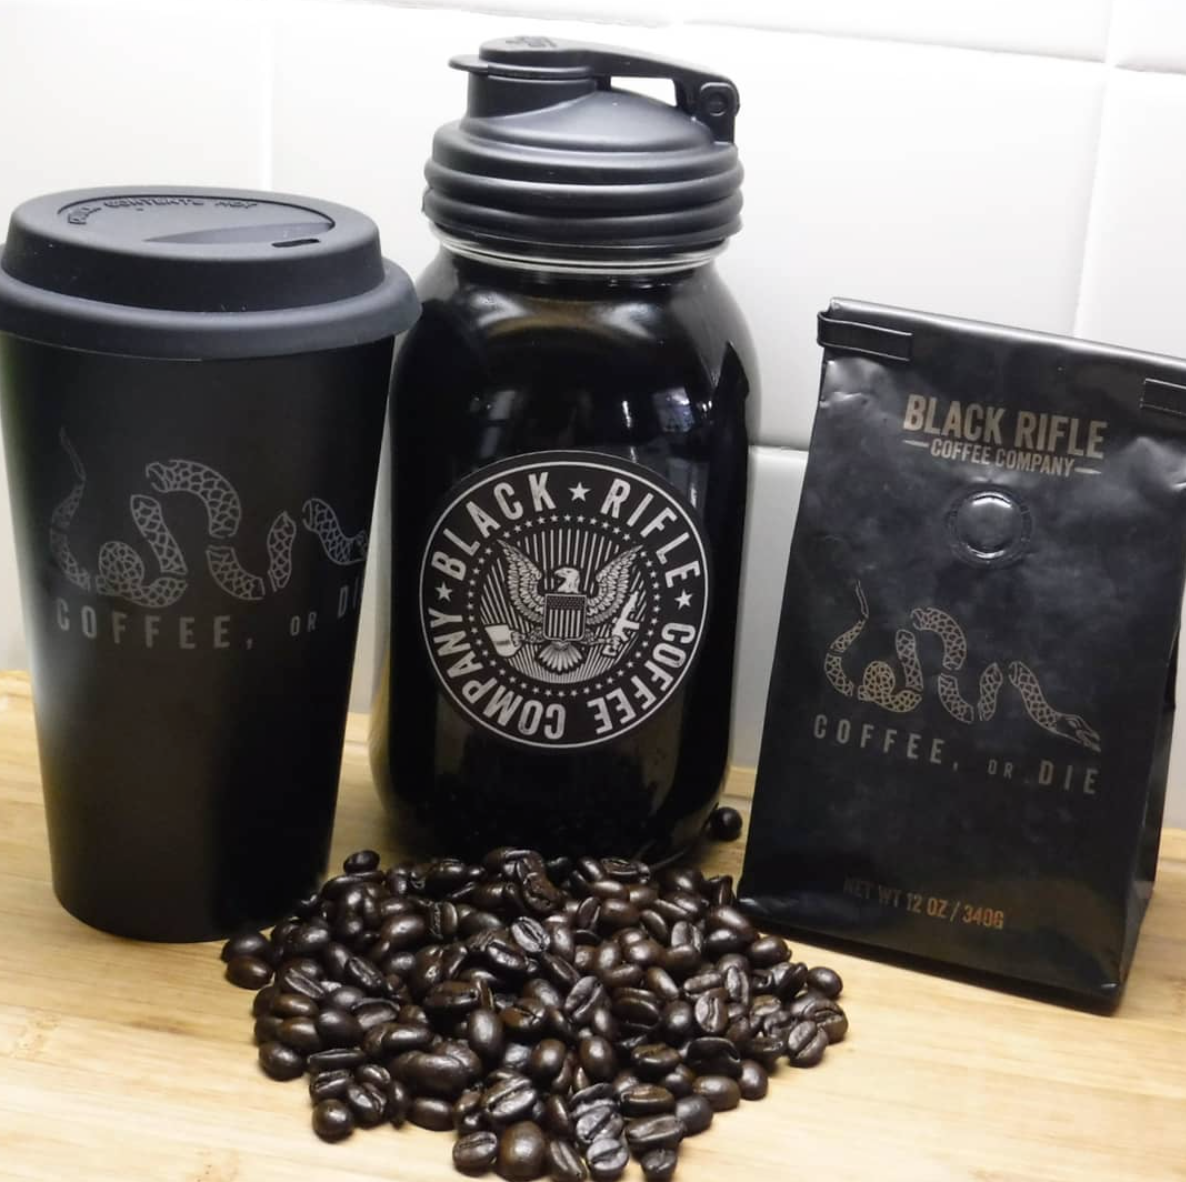 Pin on Black Rifle Coffee Company